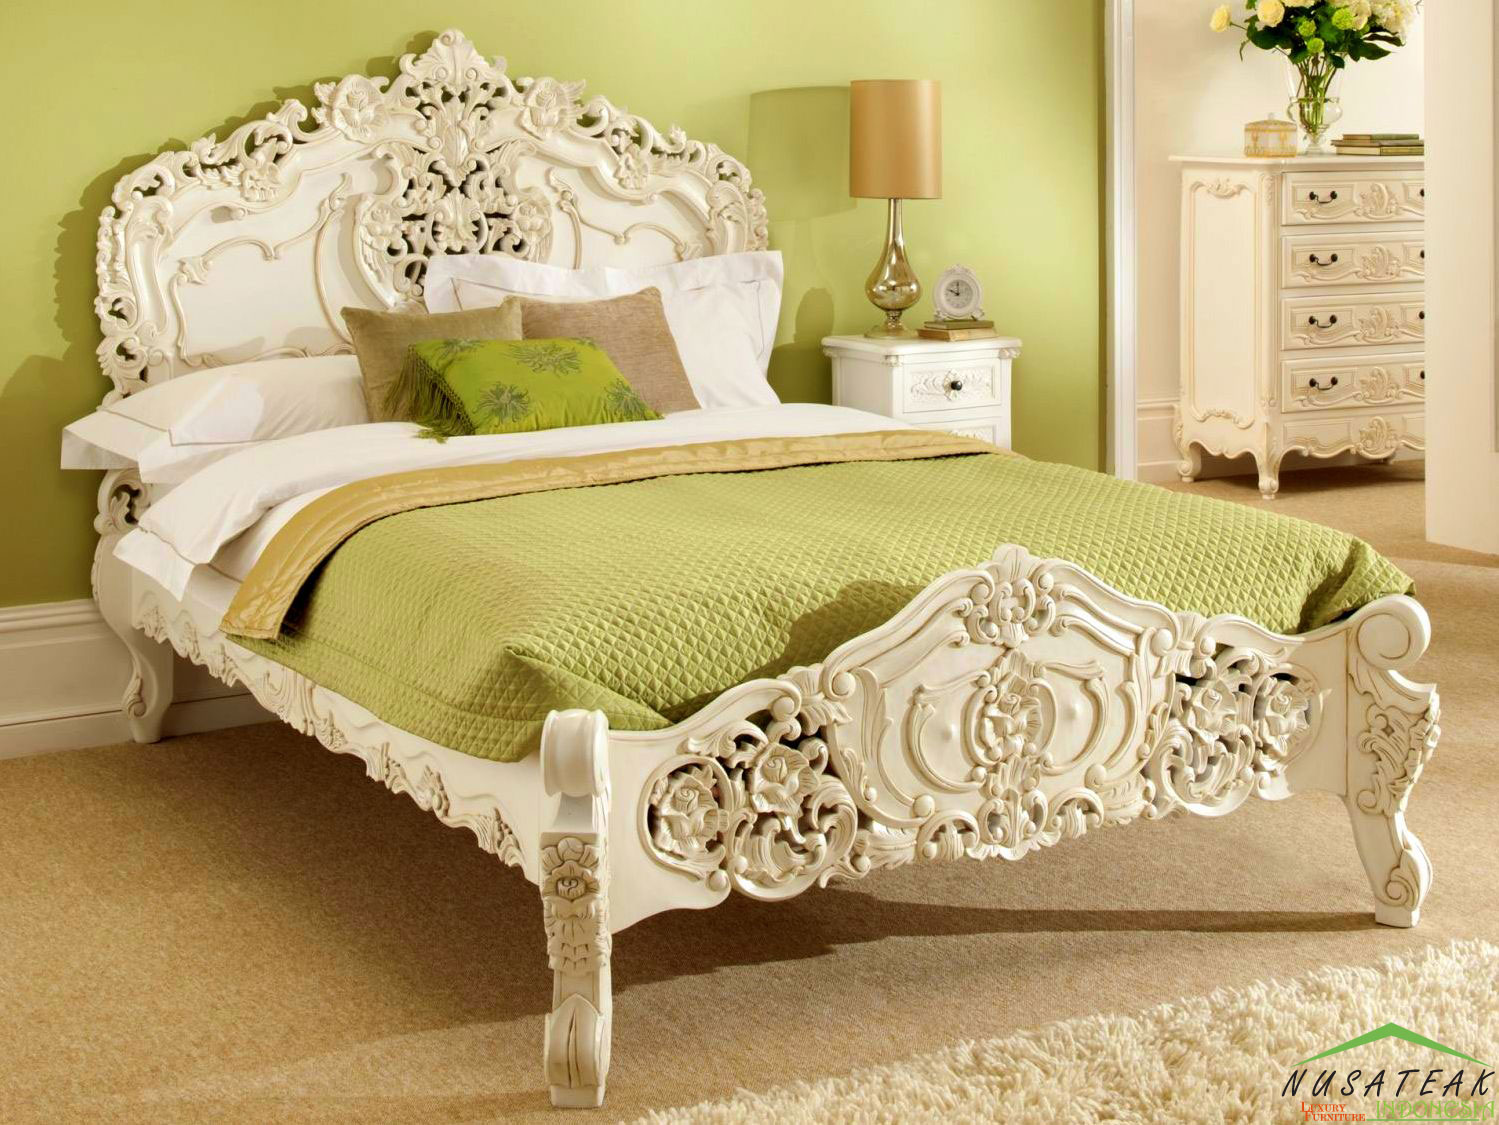 Imogiri French Style Bed | Luxury Furniture From Indonesia